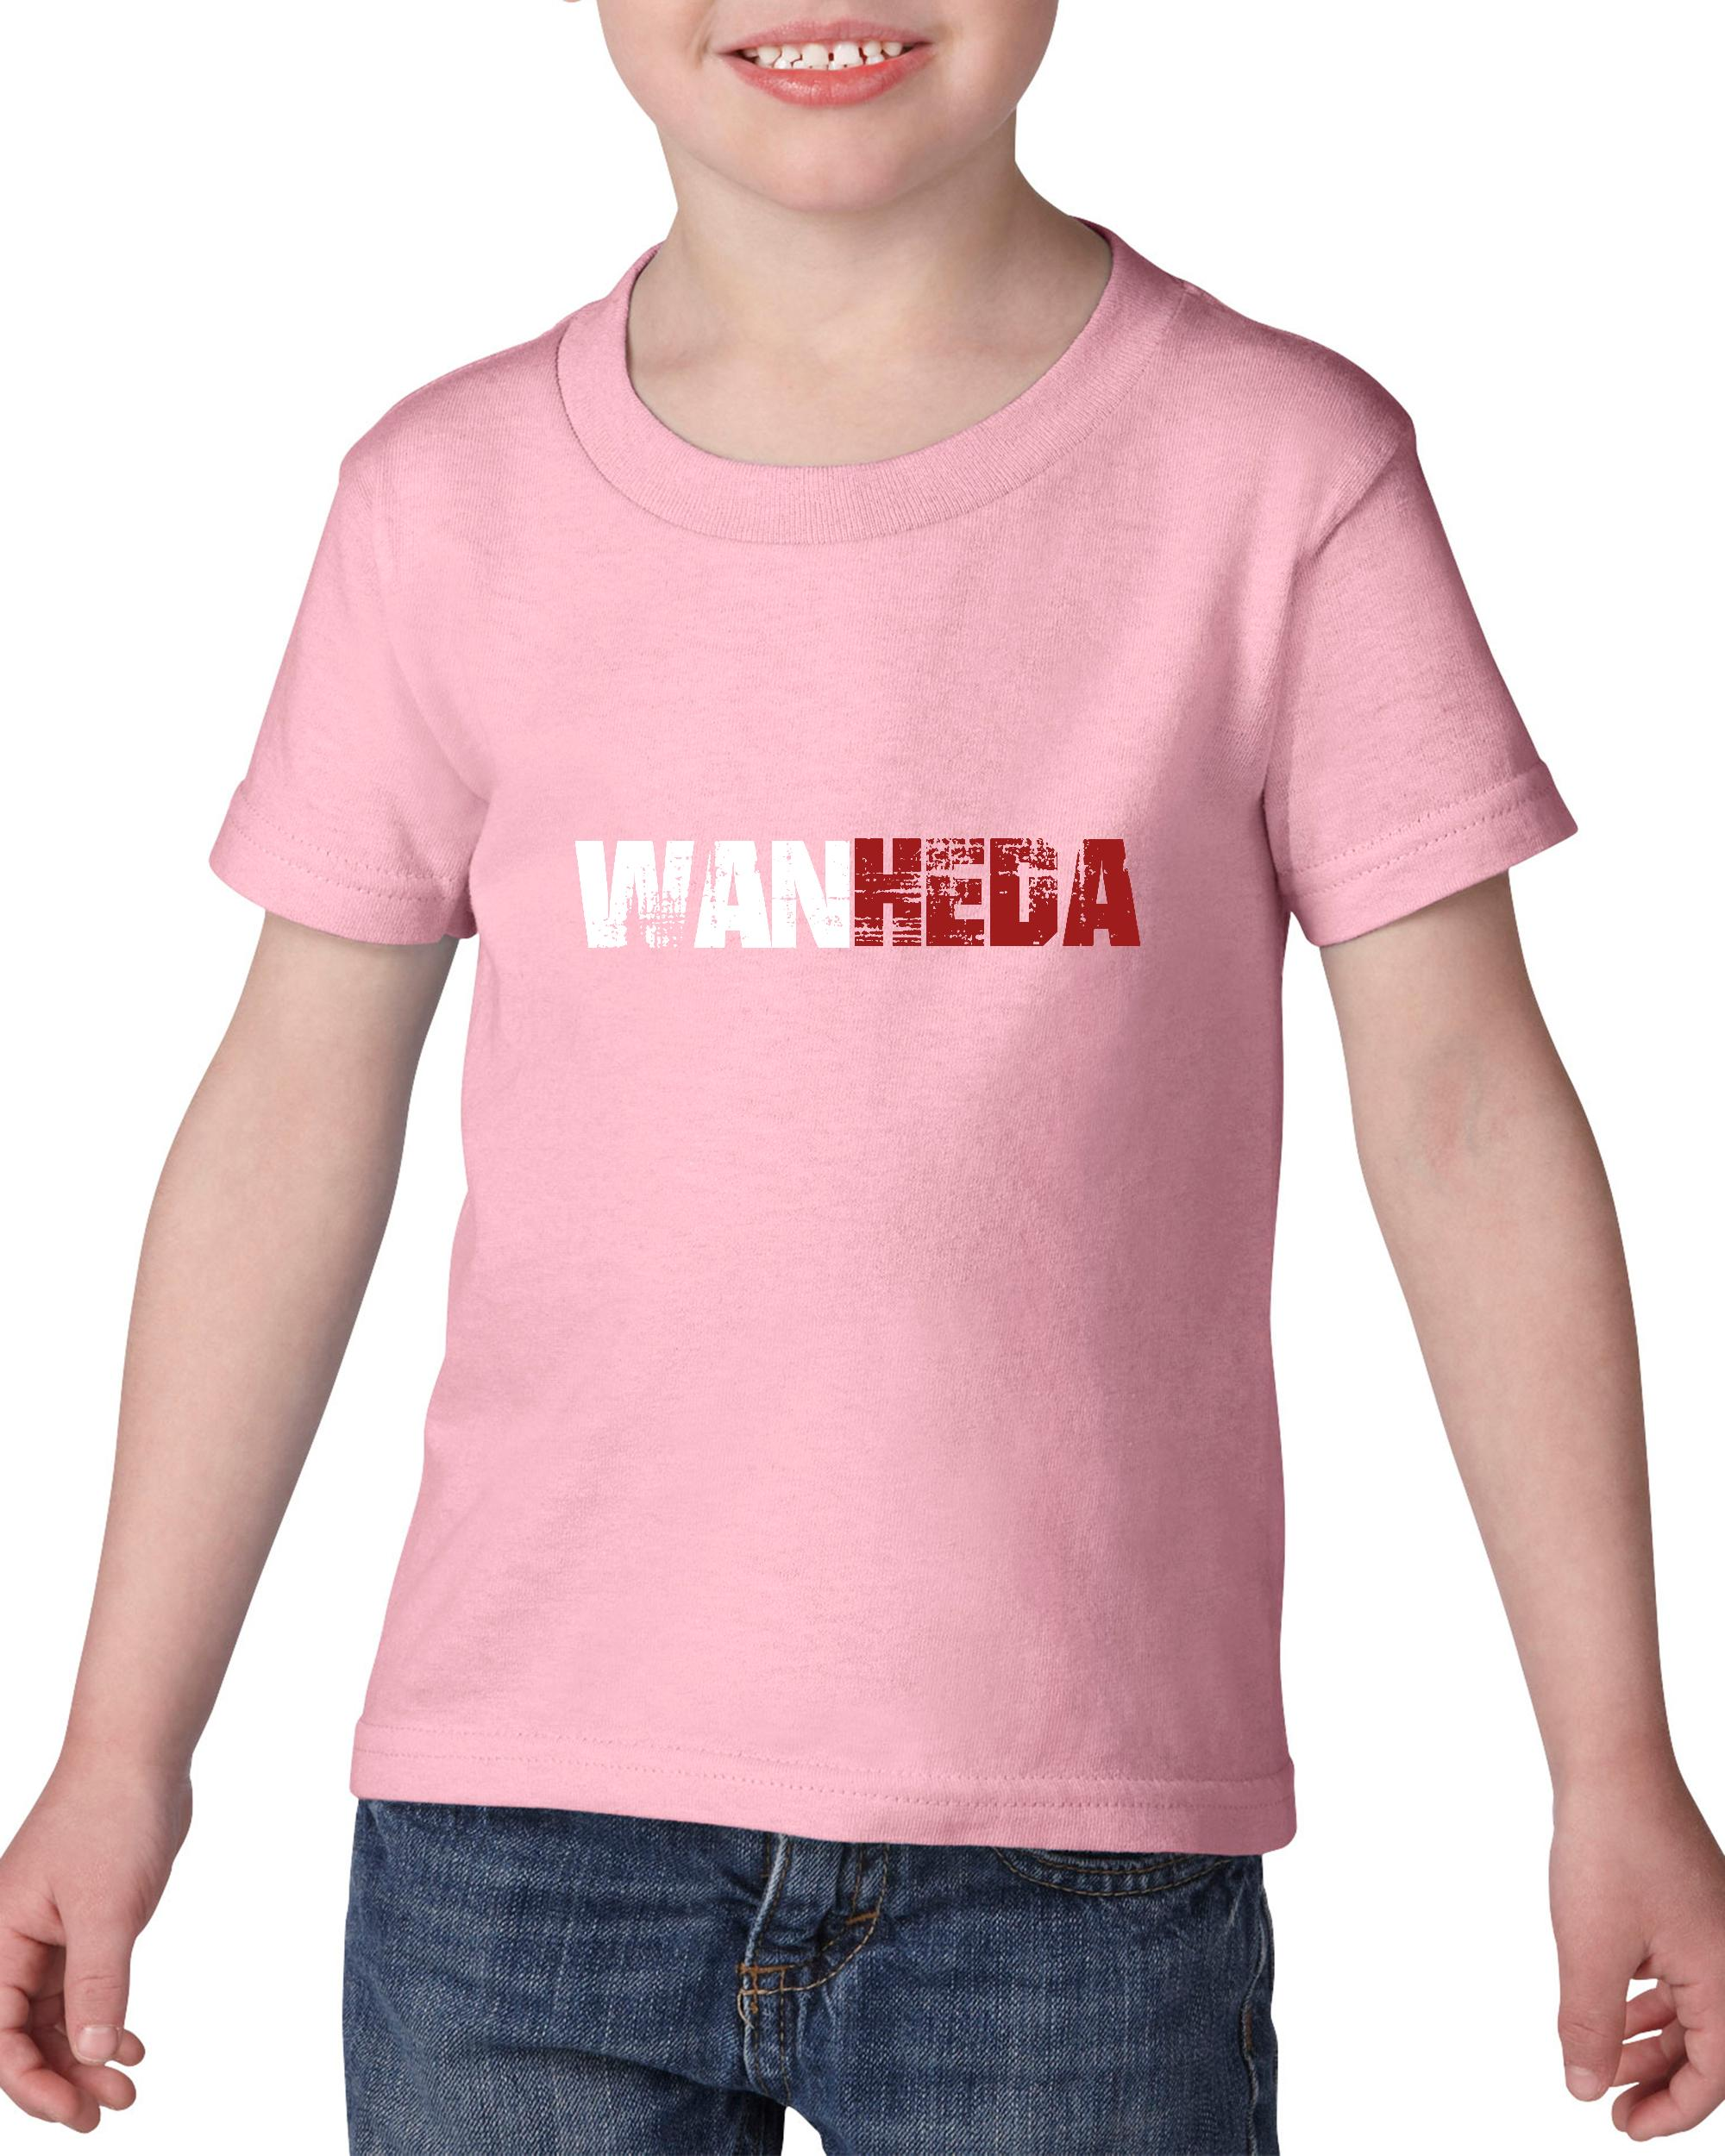 Artix WANHEDA Commender of Death Grounders Blood Must Have Blood Clarke Lexa Lincoln Octavia Raven Bellamy Monty Arkadia Heavy Cotton Toddler Kids T-Shirt Tee Clothing